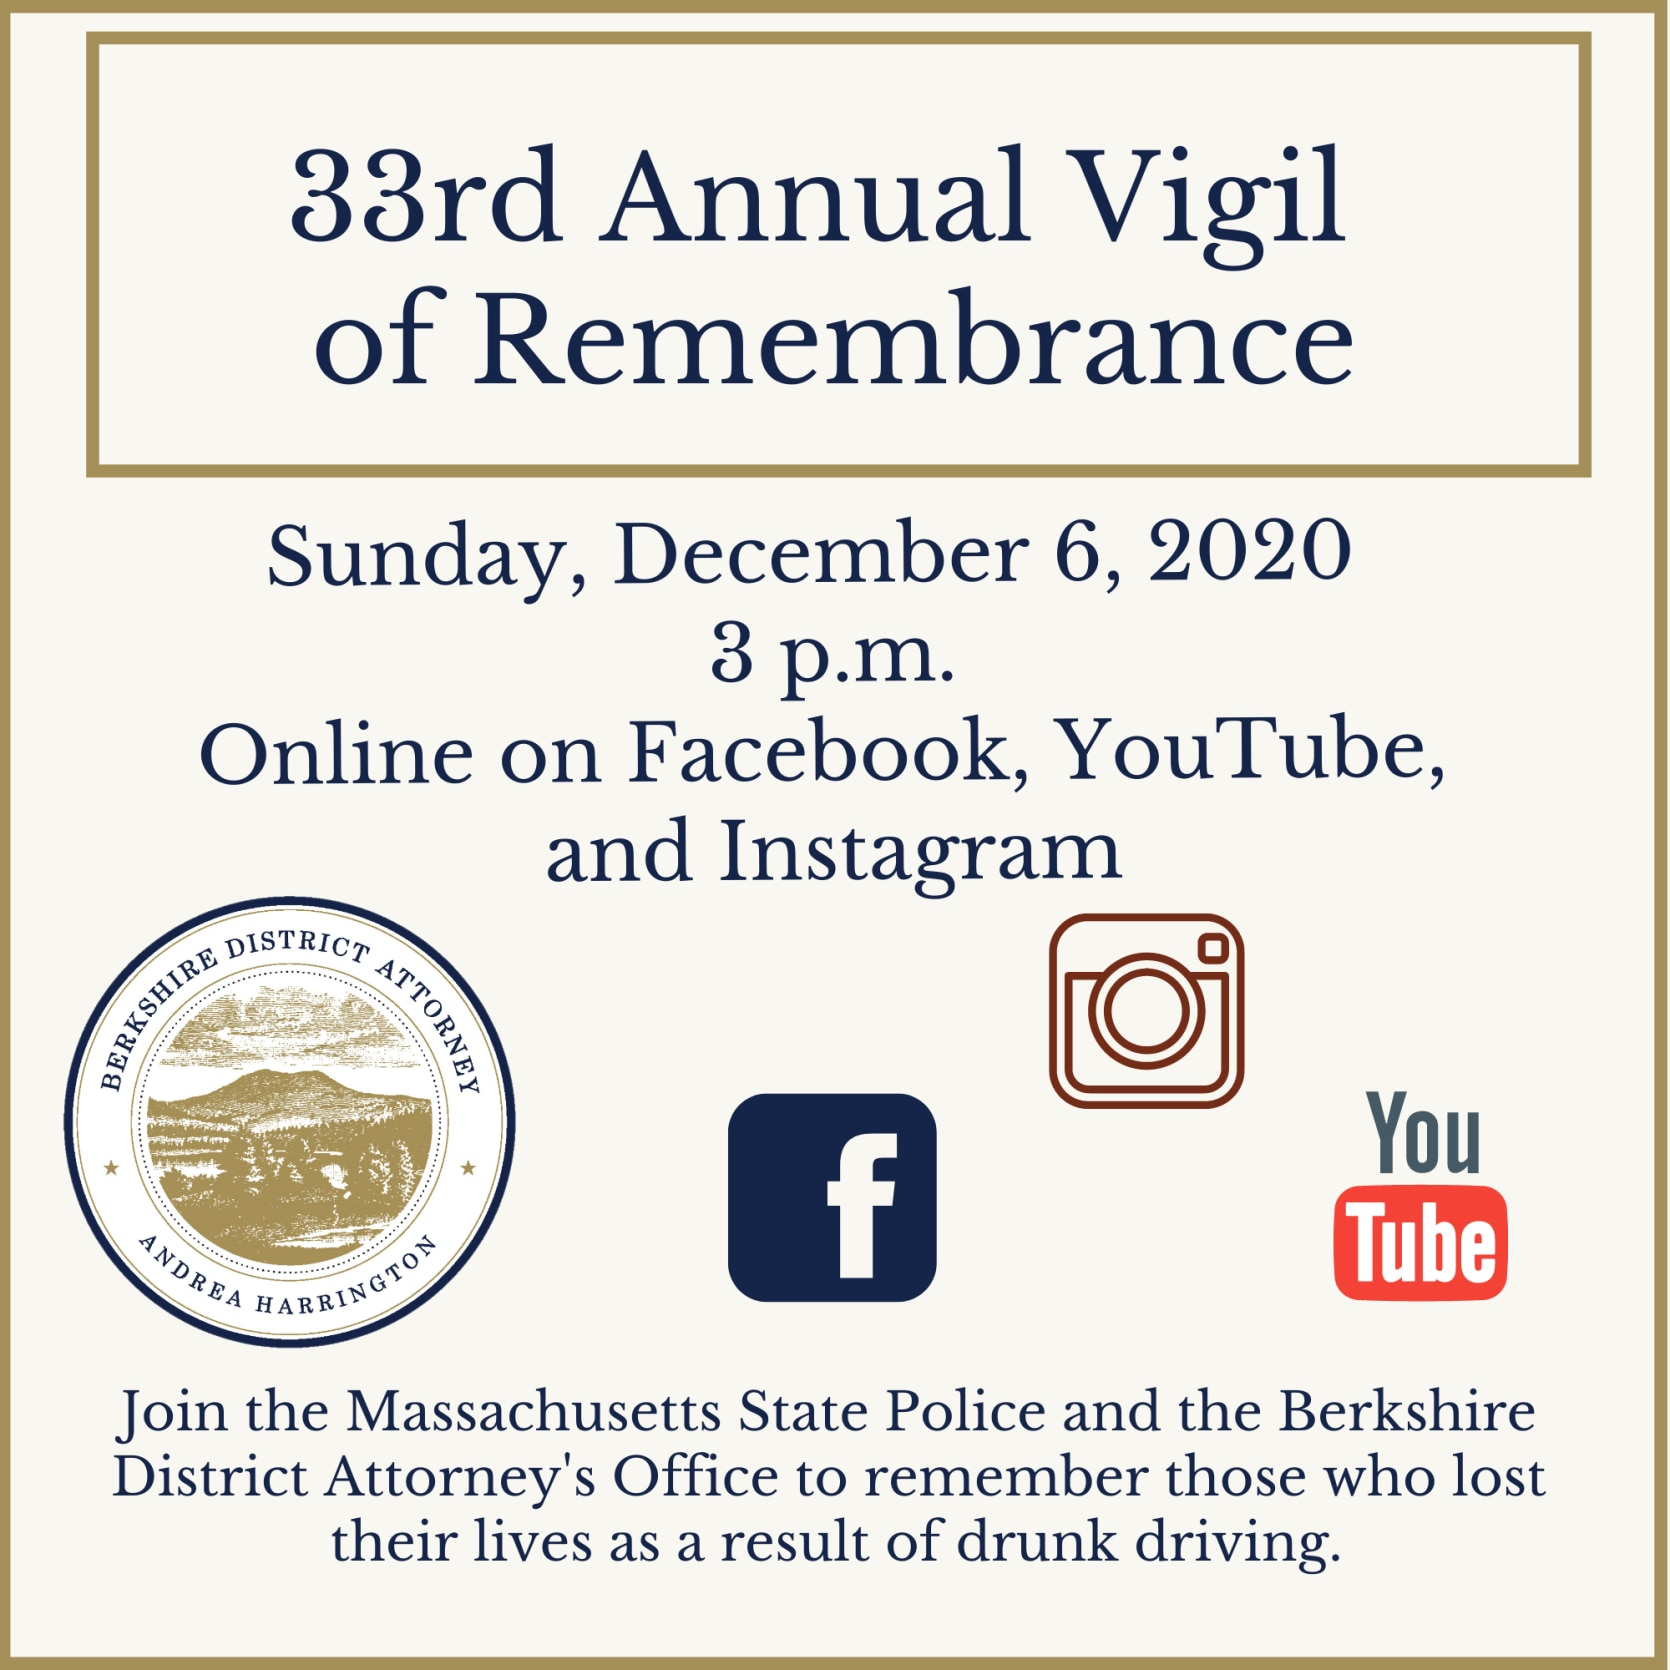 Berkshire DA's Office Holds Virtual Ceremony To Remember and Honor Those Who Lost Their Lives in Drunk Driving Crashes